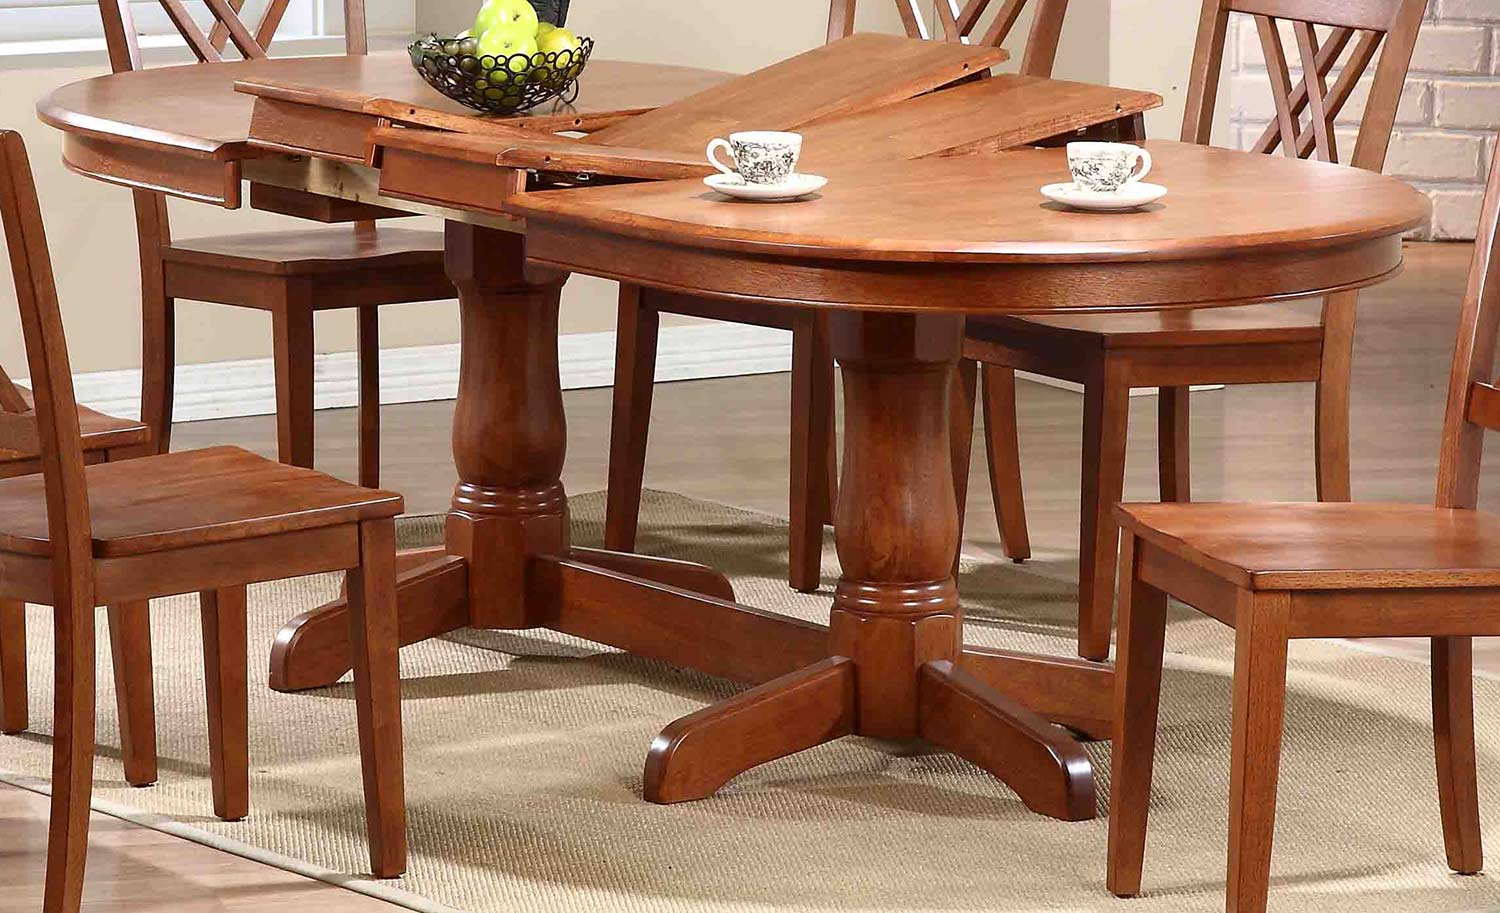 Iconic Furniture Oval Double Pedestal Dining Table - Cinnamon/Cinnamon